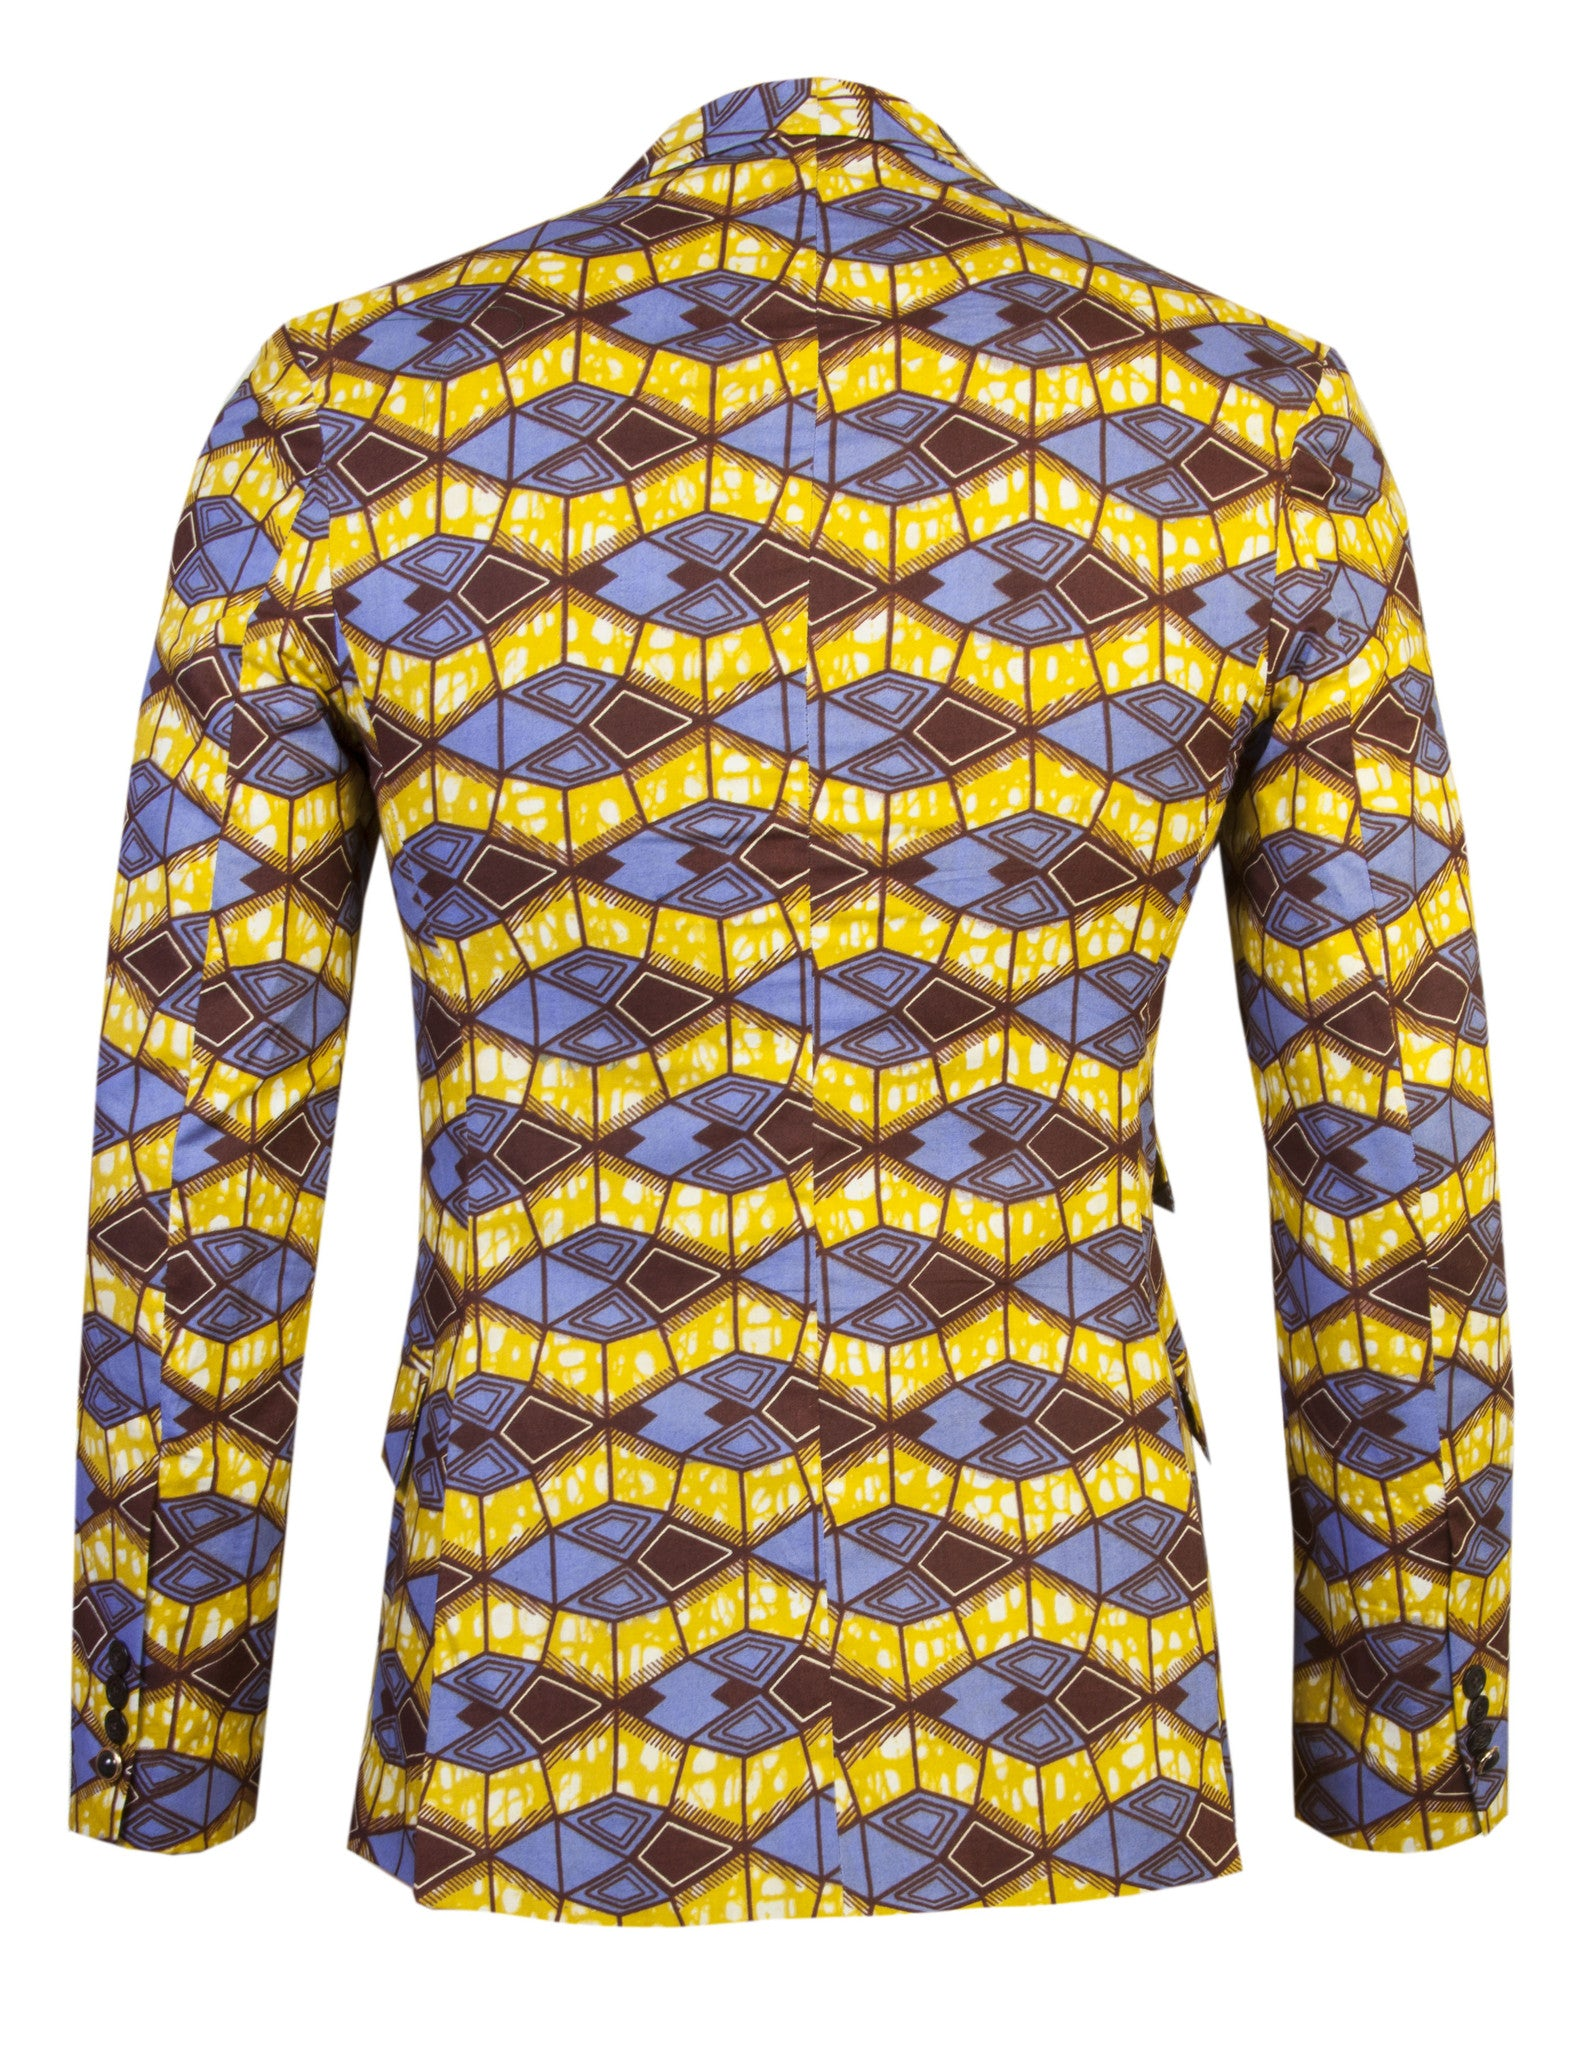 Joshua 2 button African print blazer 'Azzme' - OHEMA OHENE AFRICAN INSPIRED FASHION  - 2